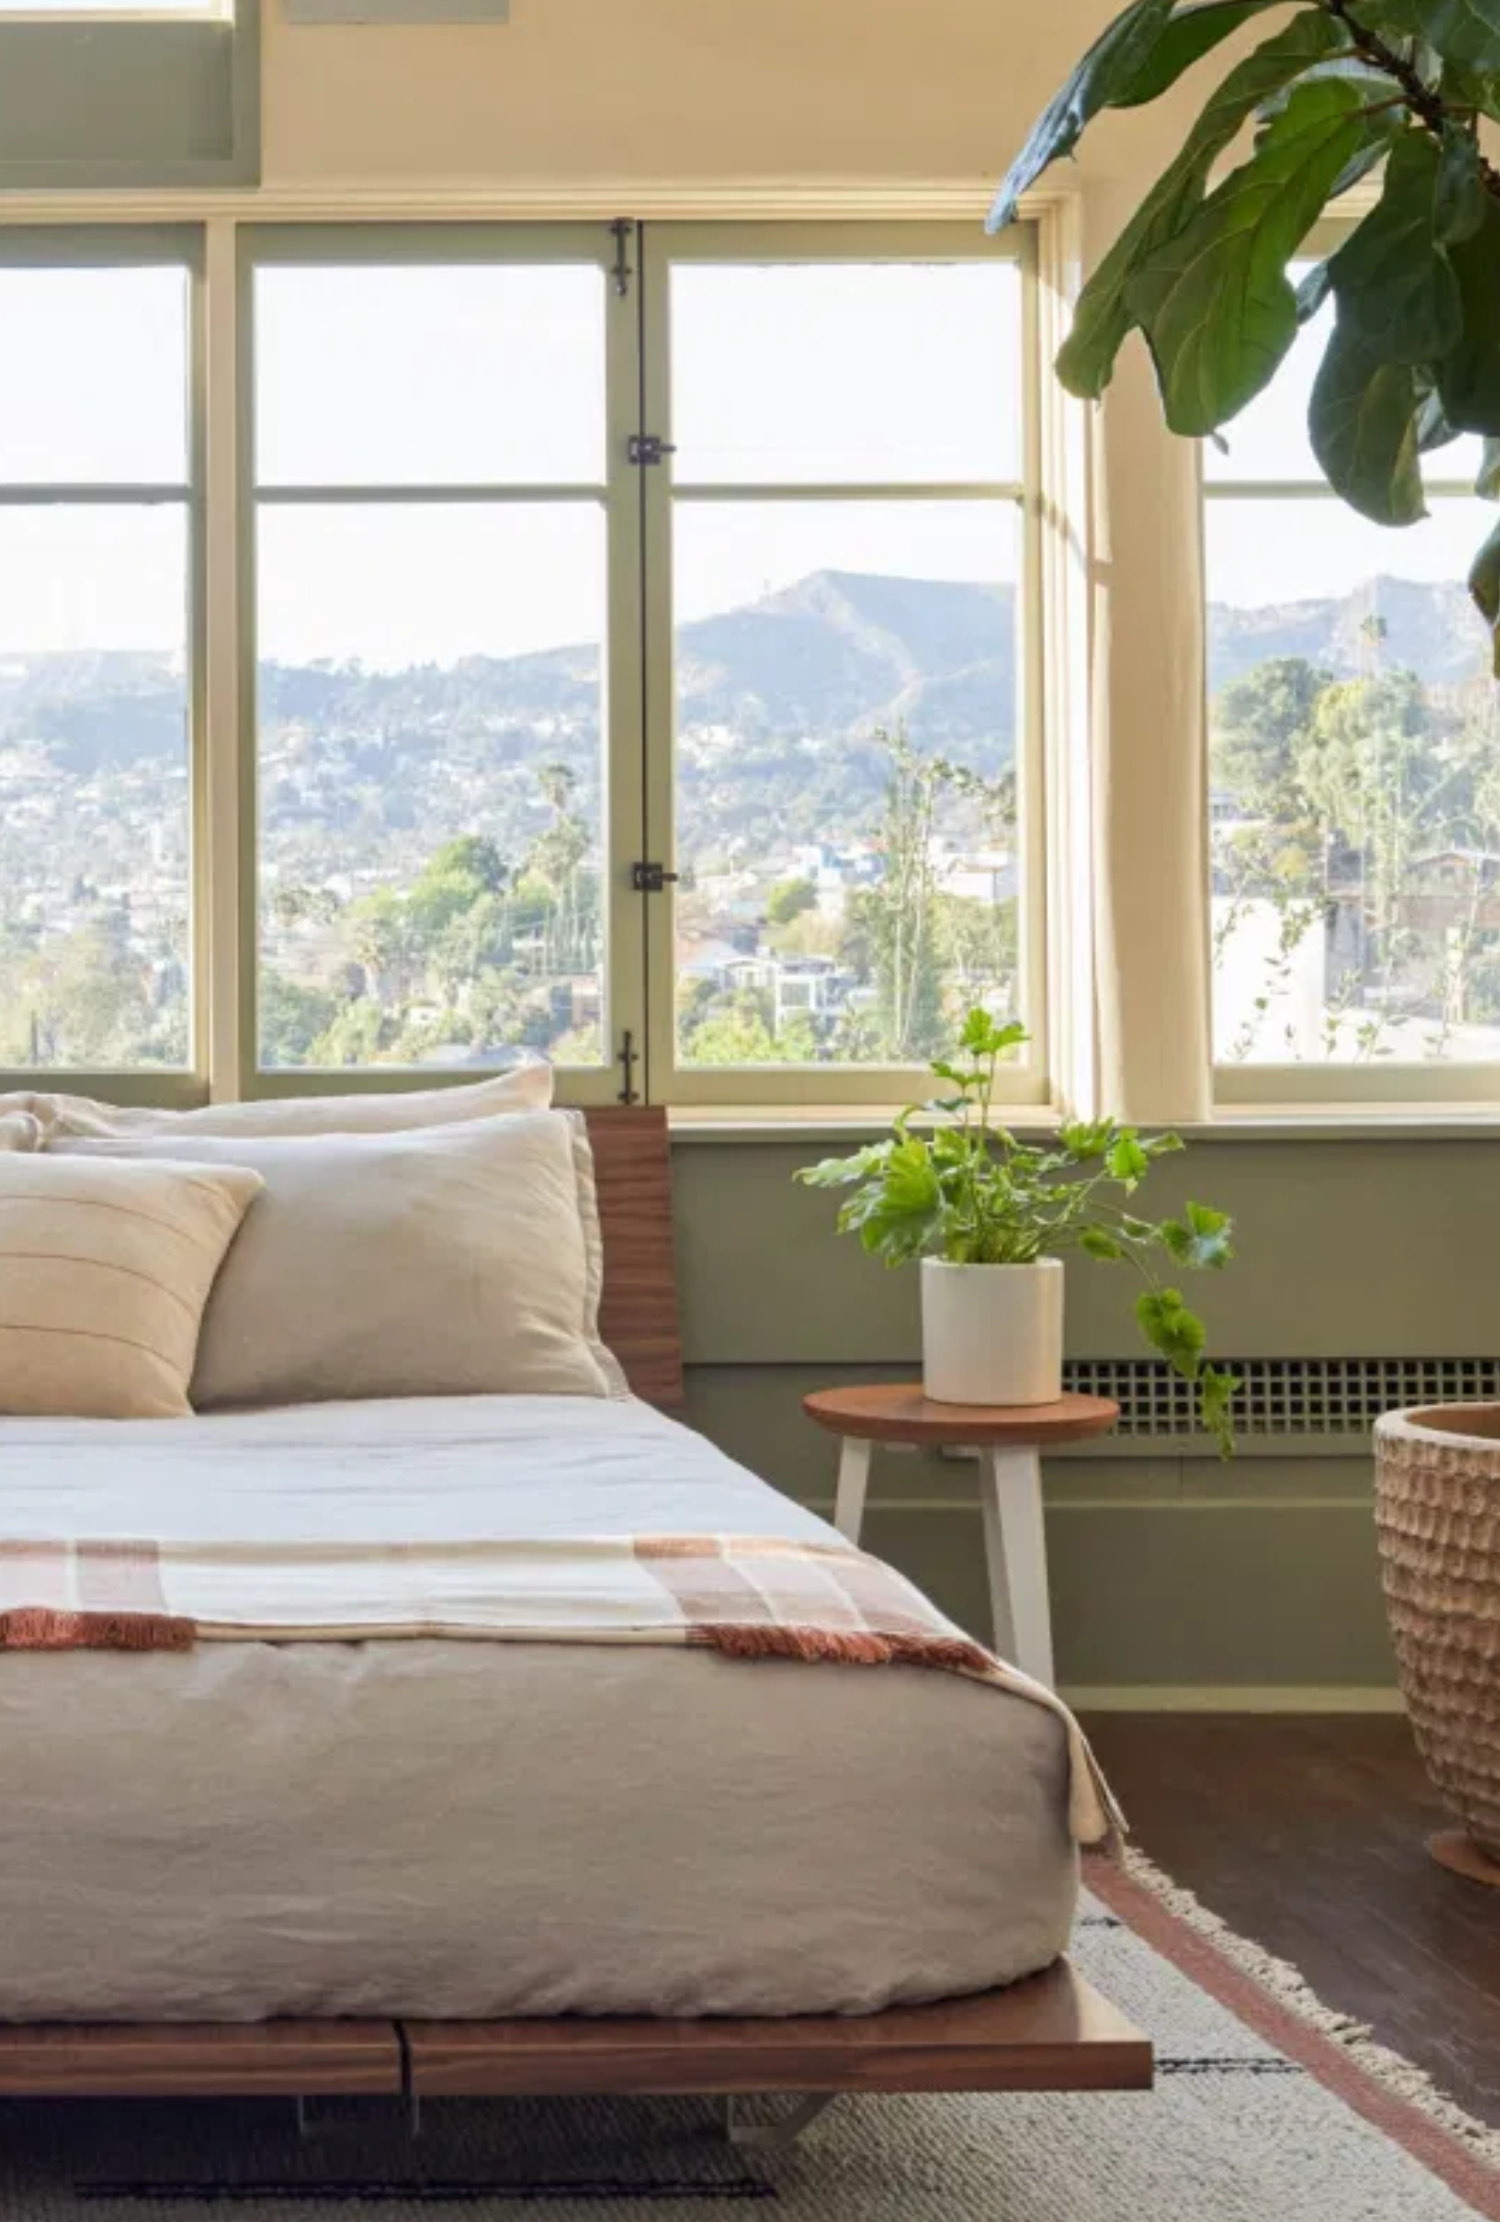 FloorFound | News - Modern Retail - DTC furniture brand Floyd is launching a resale marketplace